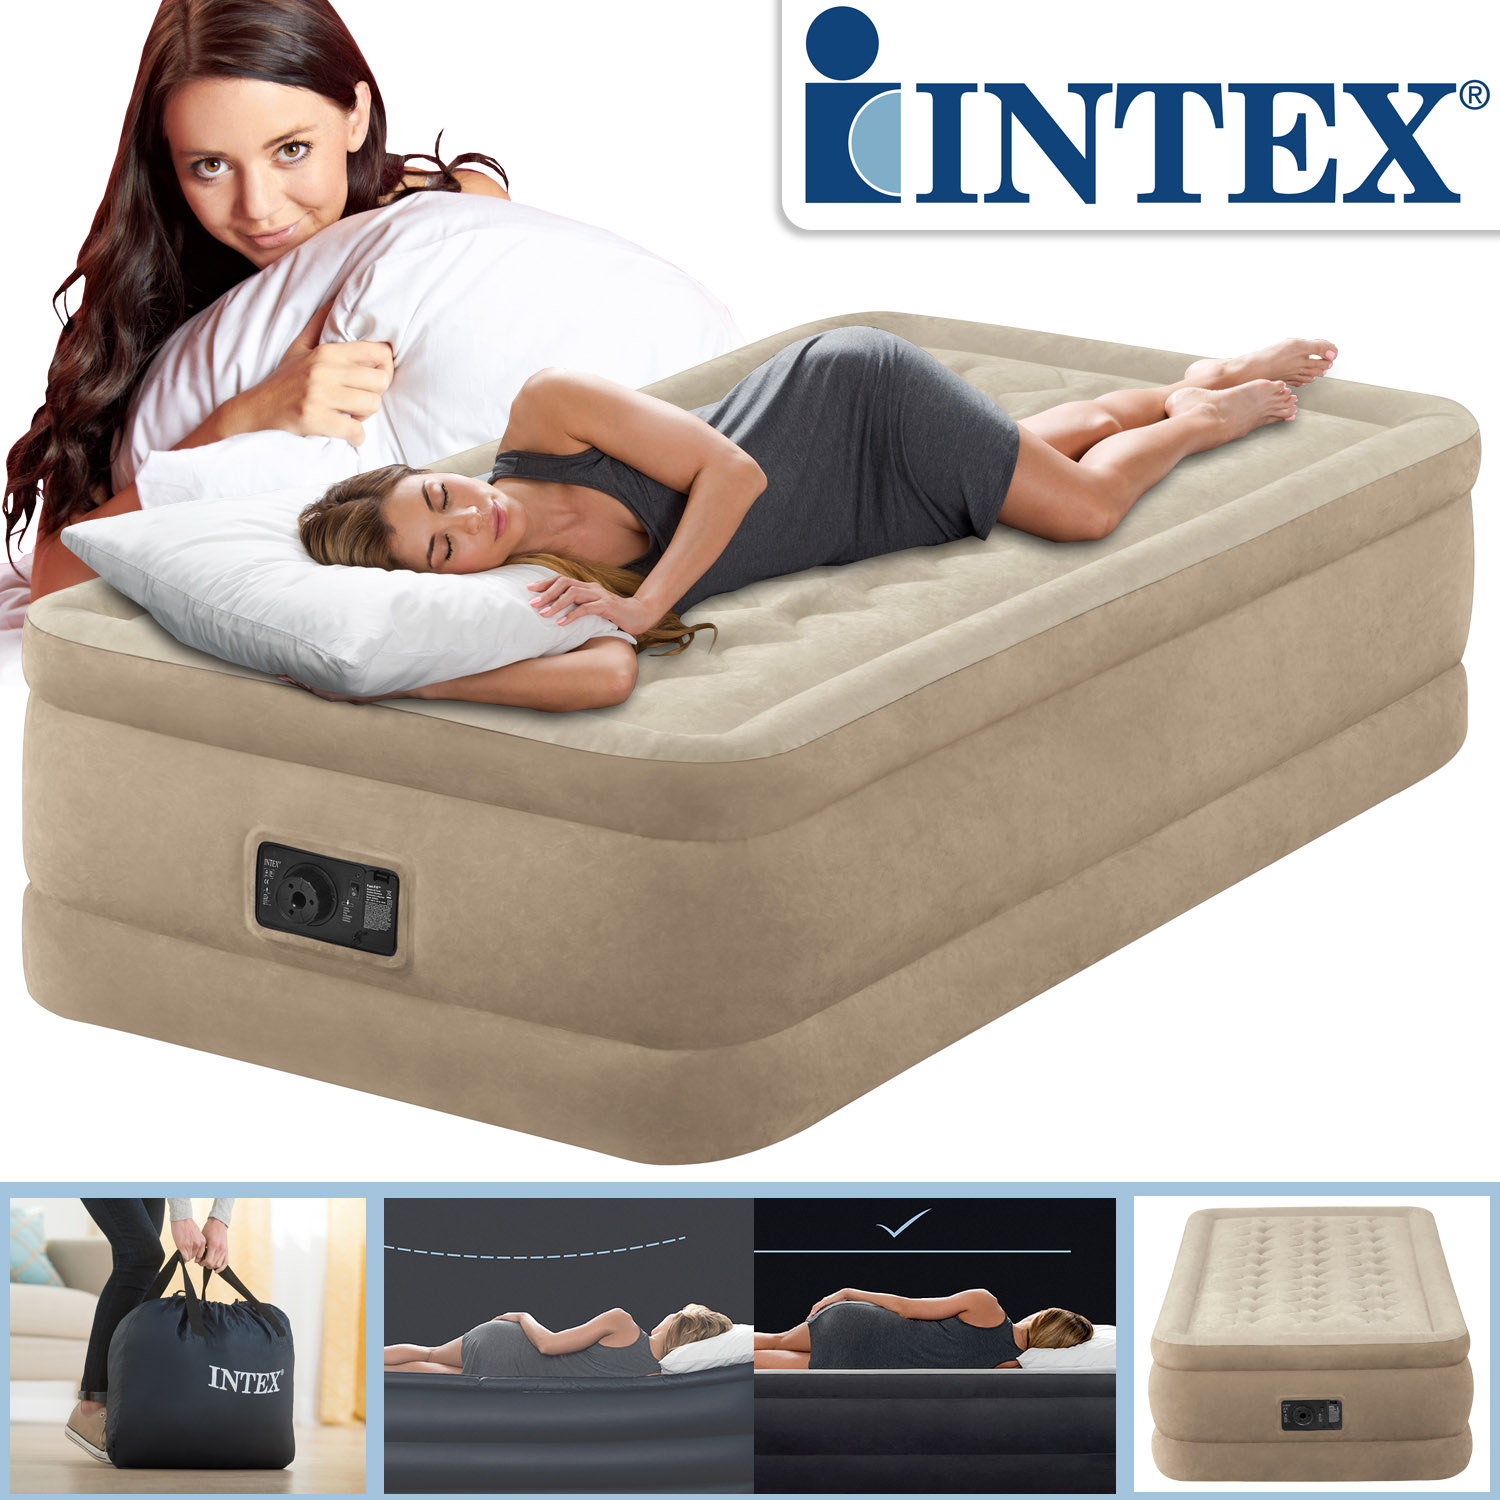 intex luftbett mit pumpe g stebett bett matratze. Black Bedroom Furniture Sets. Home Design Ideas